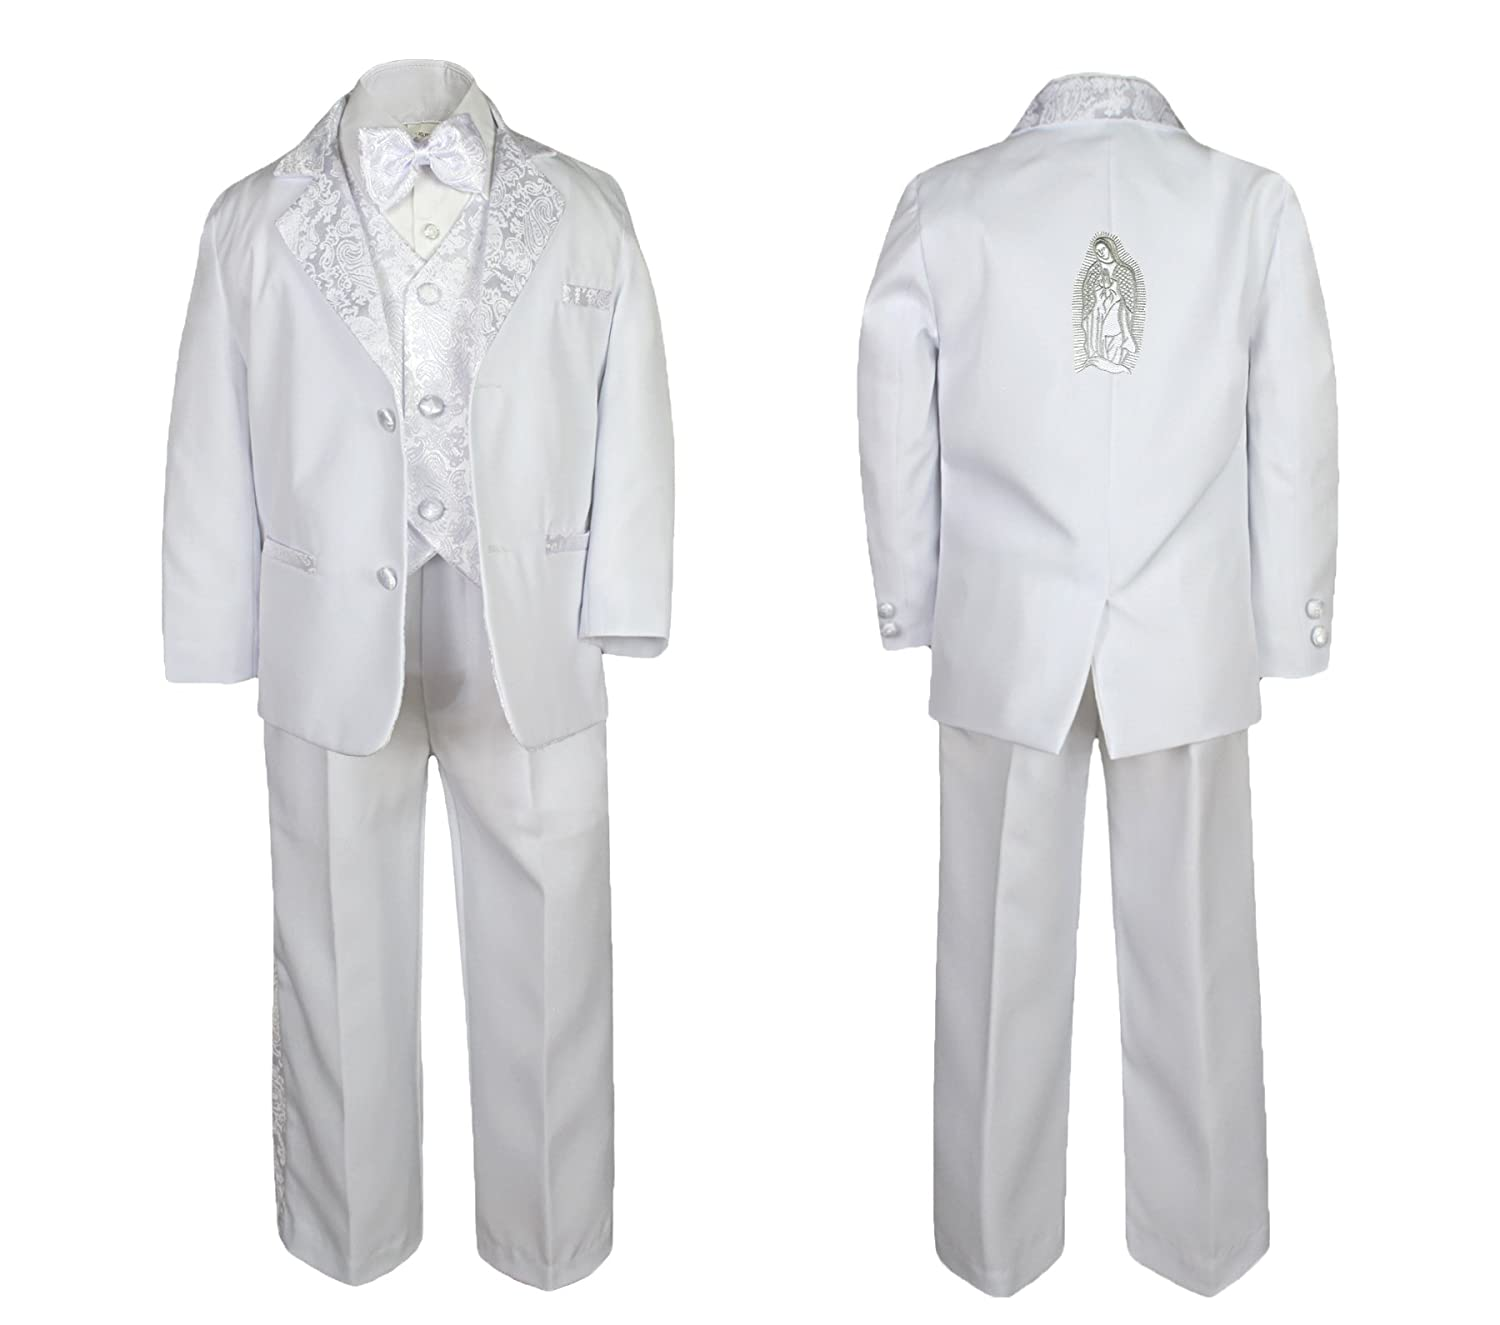 New Born Boy Christening Baptism White Tail Suit Silver Mary Maria on Back Sm-7